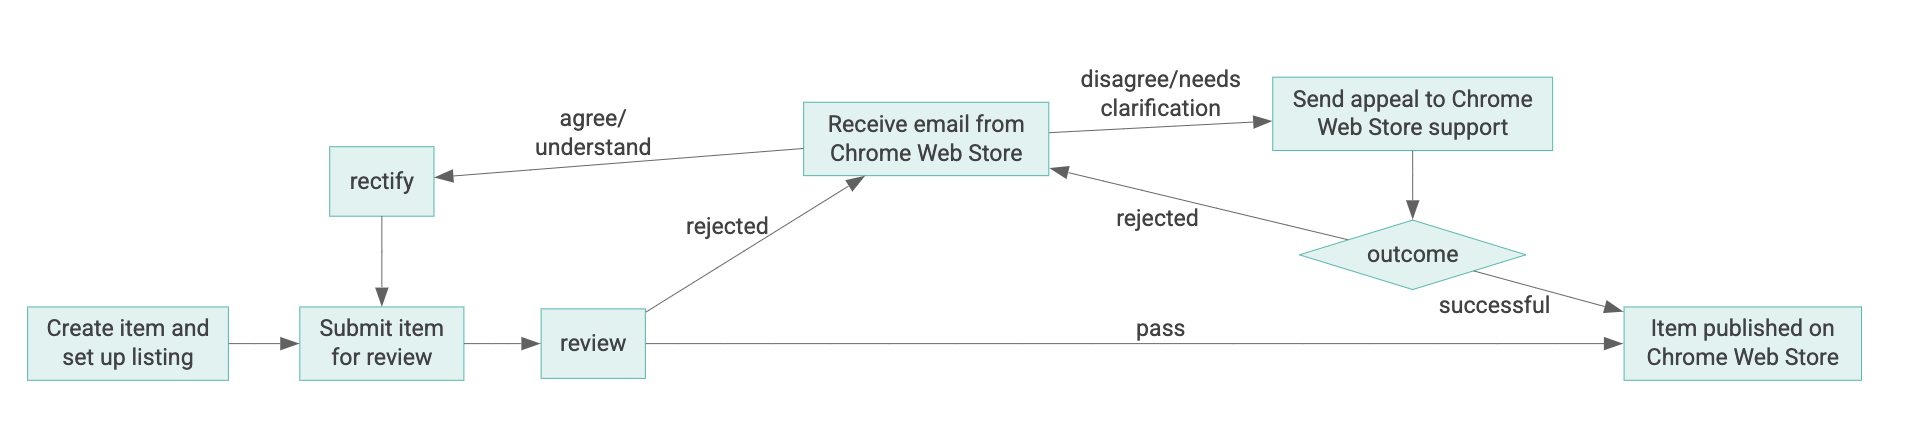 Diagram of lifecycle of a Chrome Web Store item